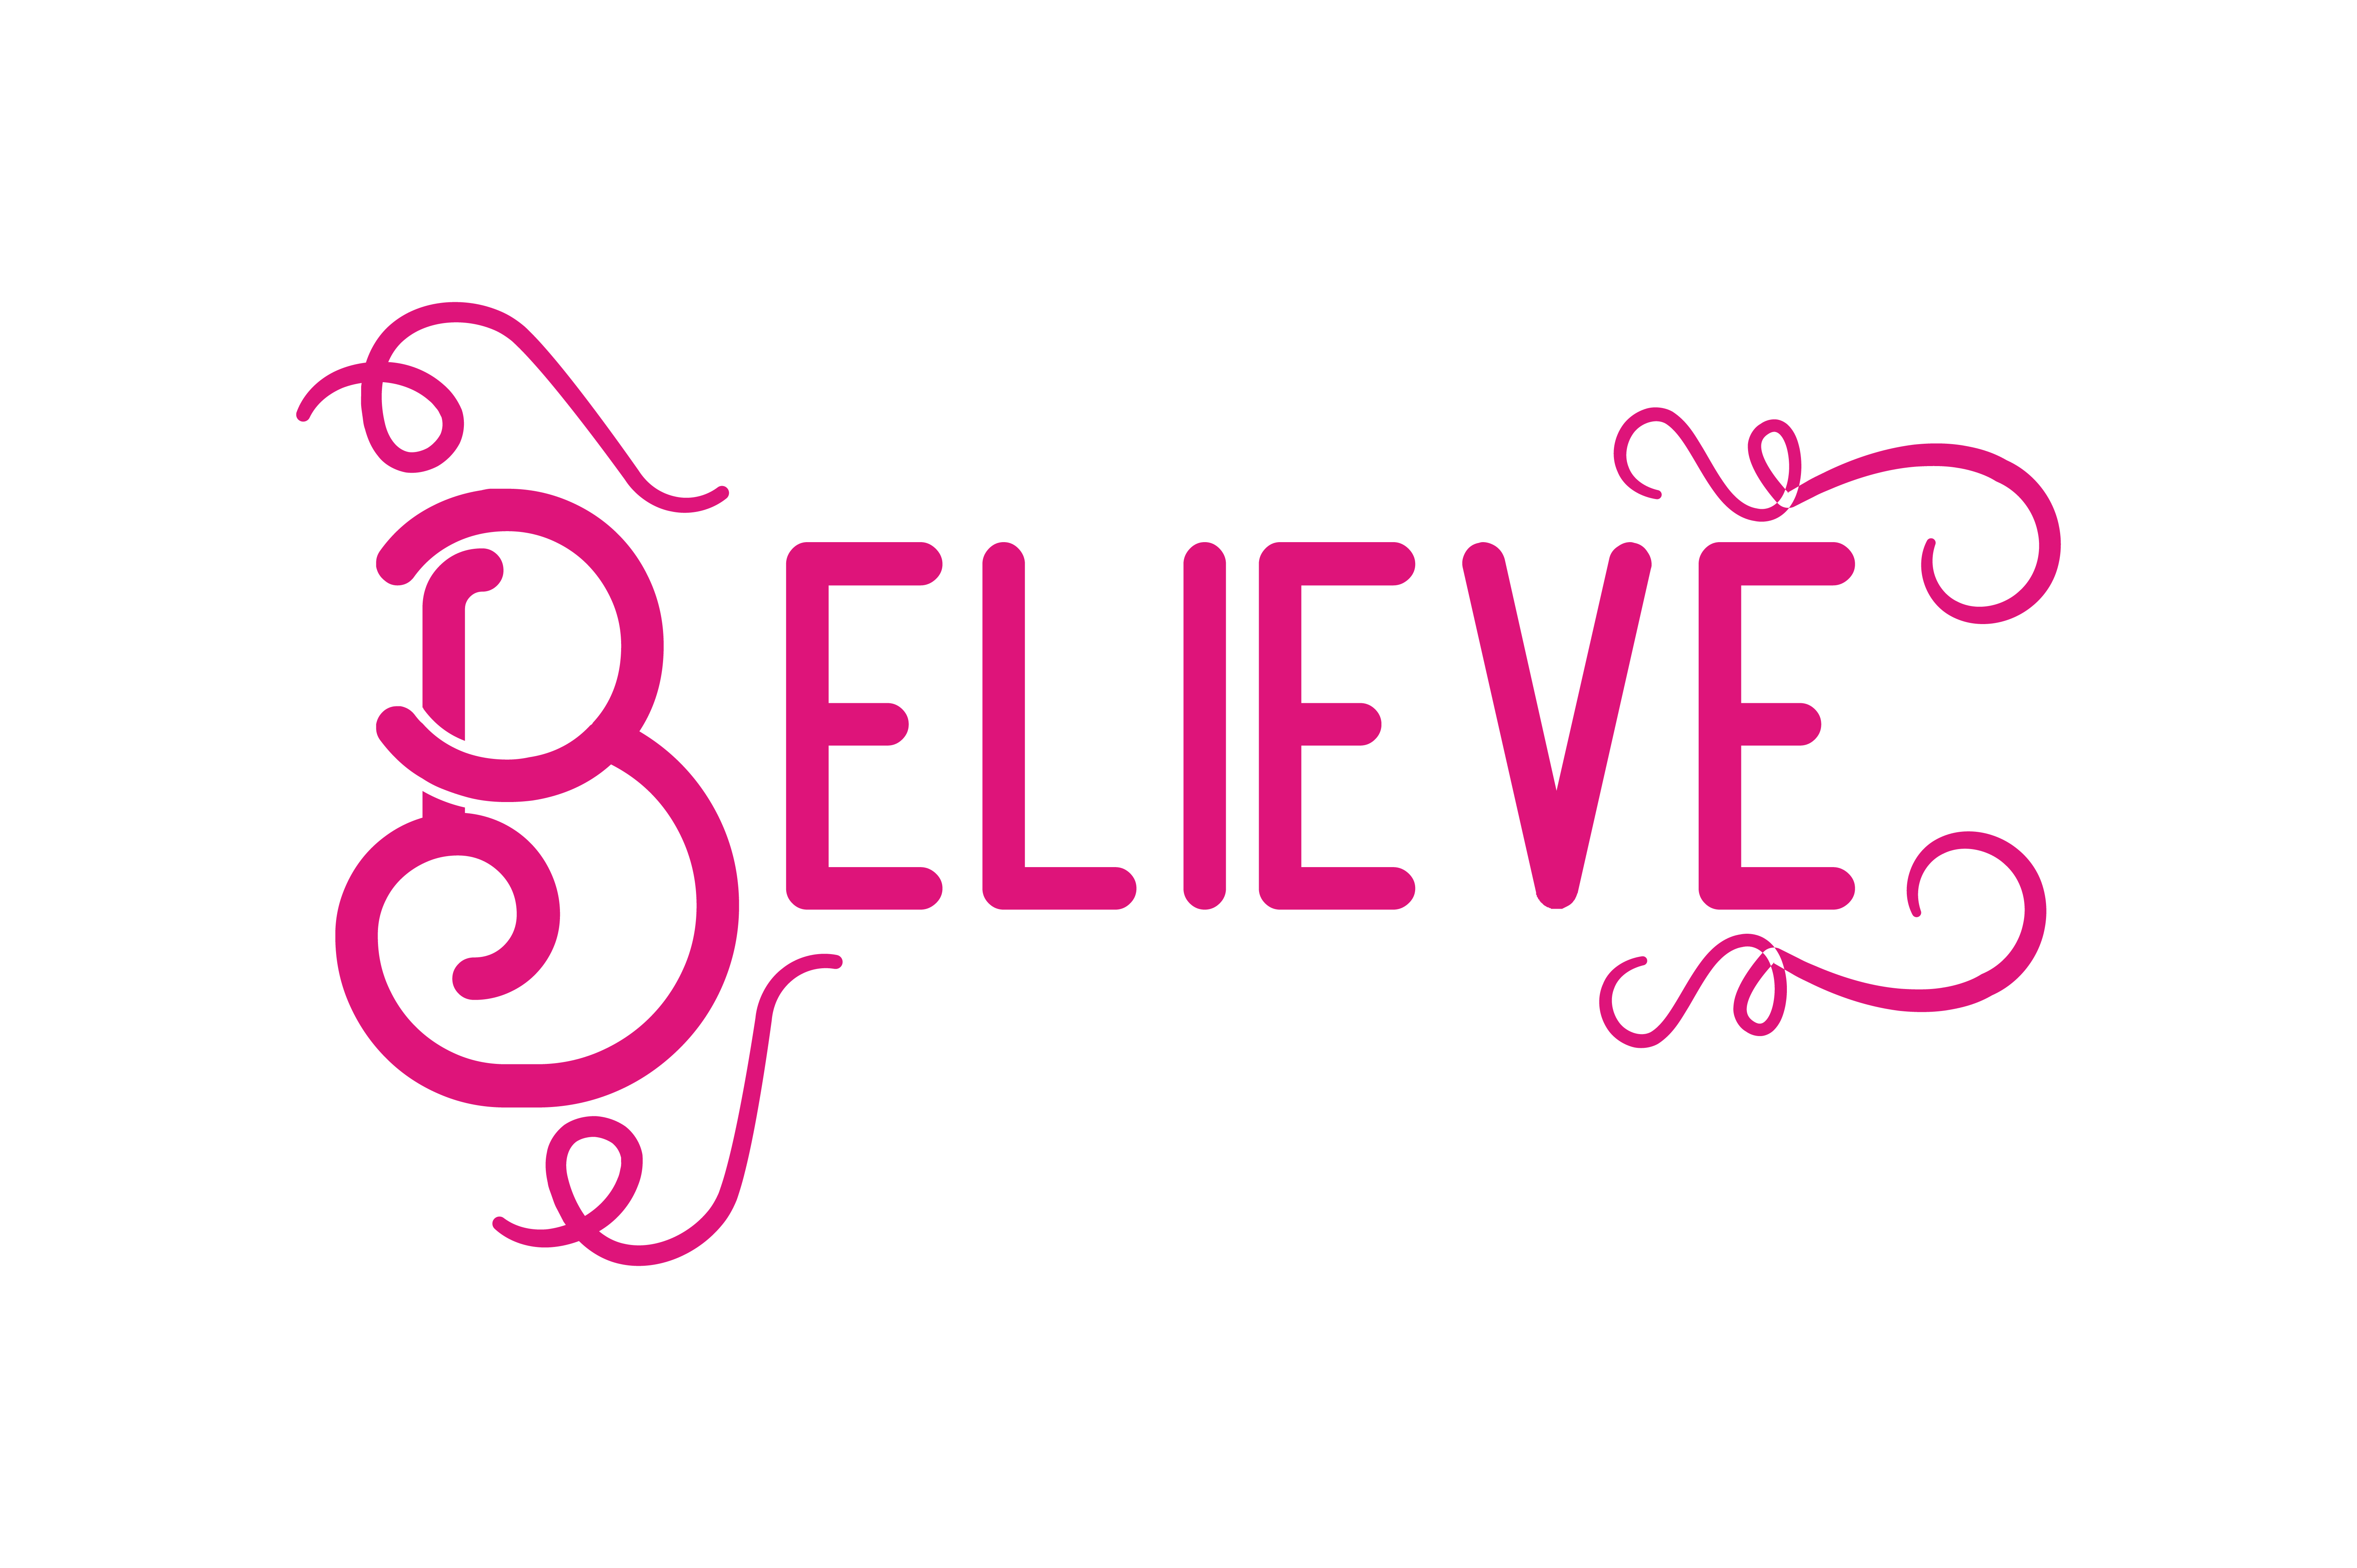 Download Free Believe Svg Cut Quote Graphic By Thelucky Creative Fabrica for Cricut Explore, Silhouette and other cutting machines.